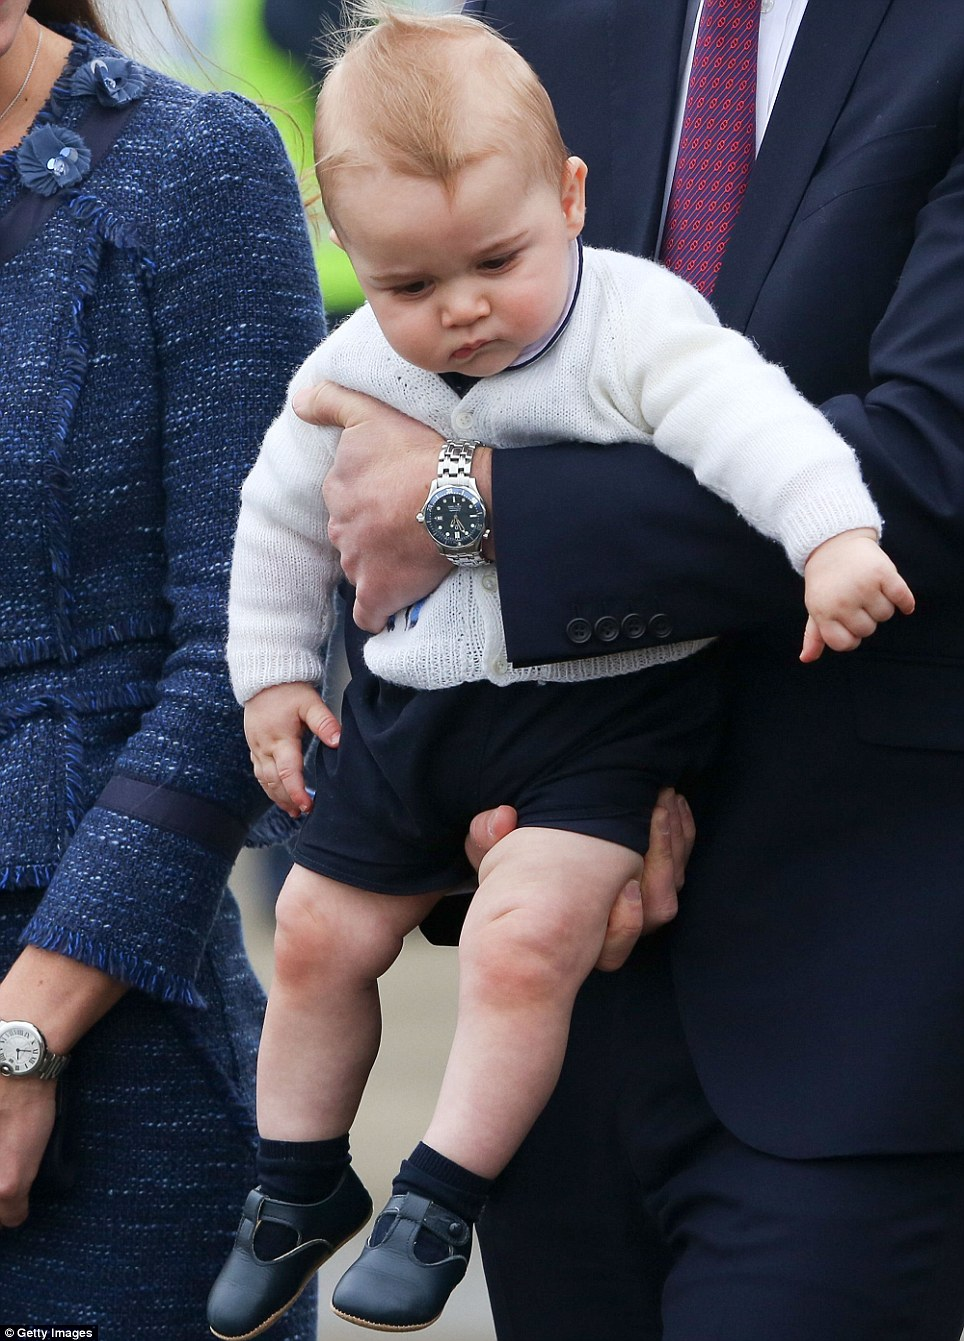 The tiny tot hasn't been particularly smiley throughout the royal tour